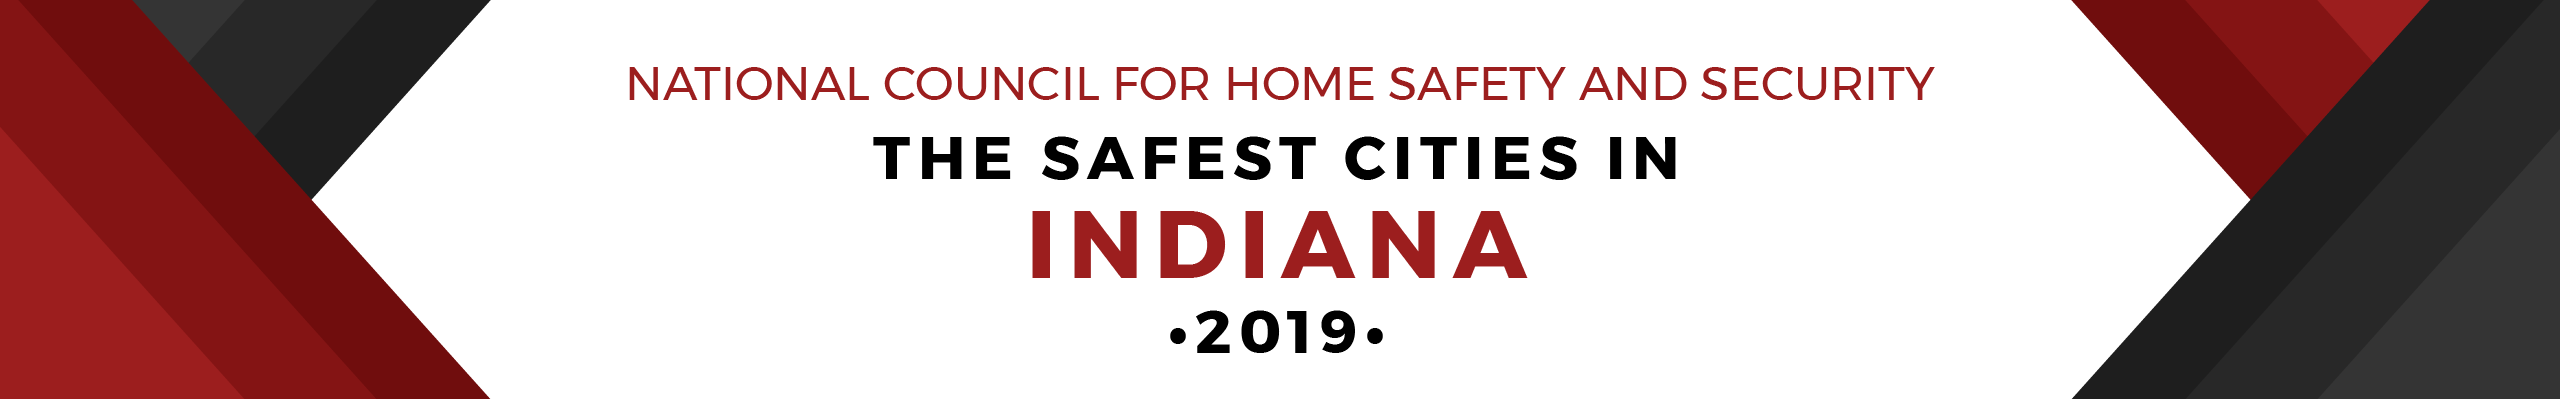 Safest Cities Indiana - header